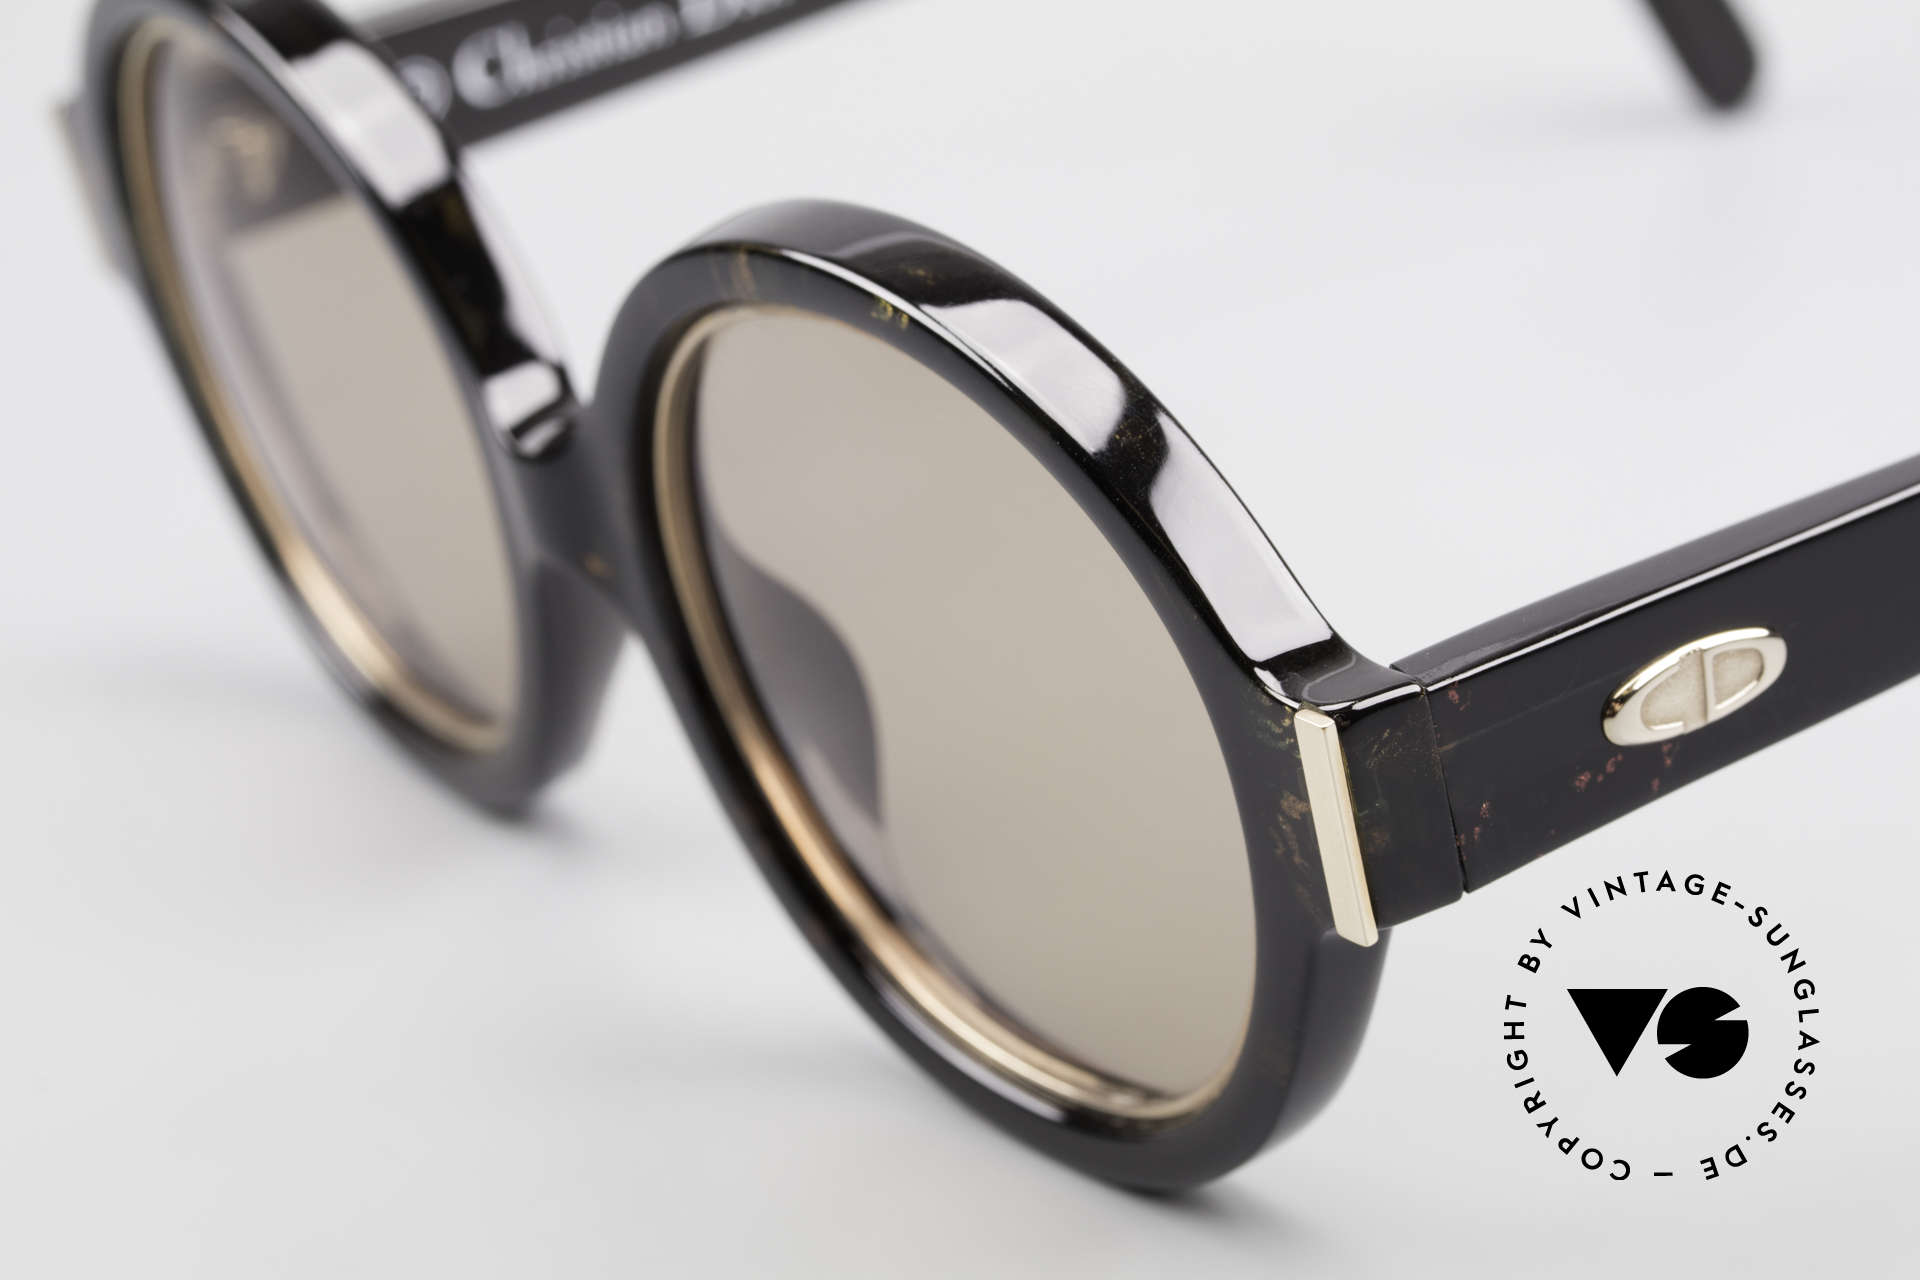 Christian Dior 2446 Round Ladies Sunglasses 80's, sophisticated sunglasses and a true vintage RARITY!, Made for Women